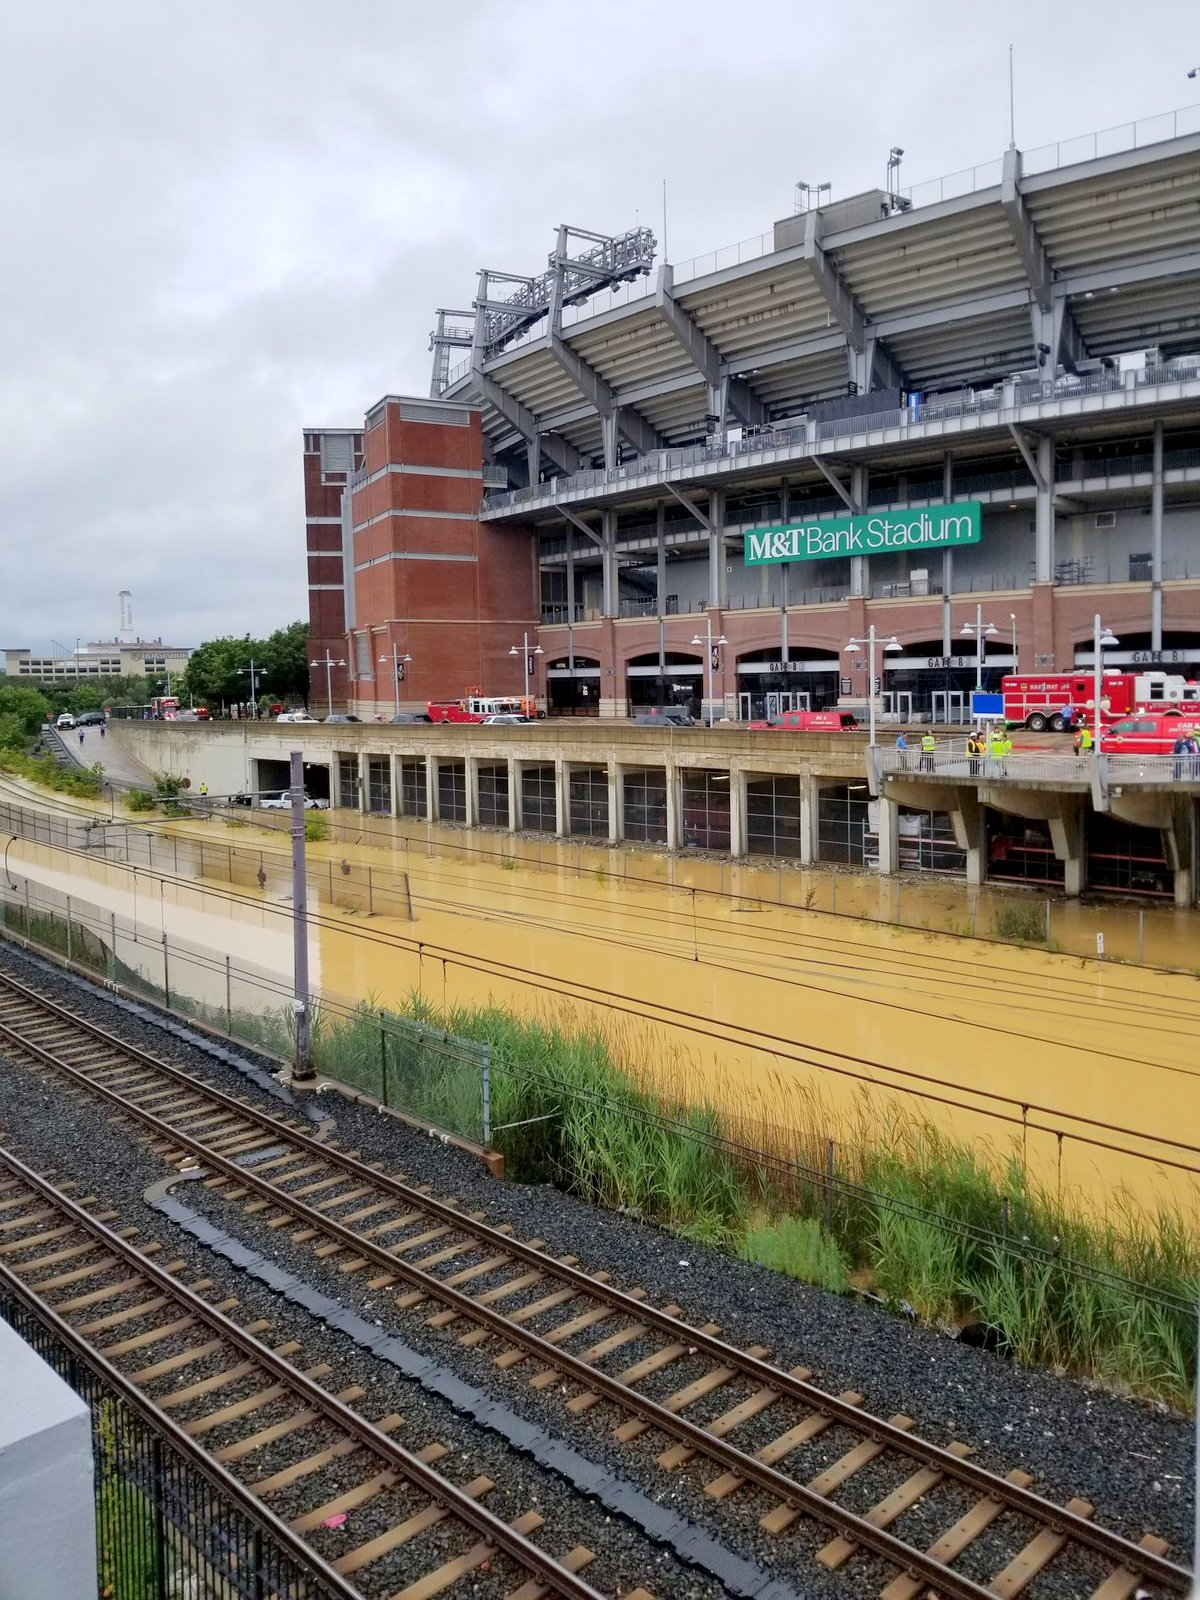 MARC train and CSX tracks were shut down Monday after a water main break caused flooding on the tracks near M&T Bank Stadium. (@Baltimore DPW)